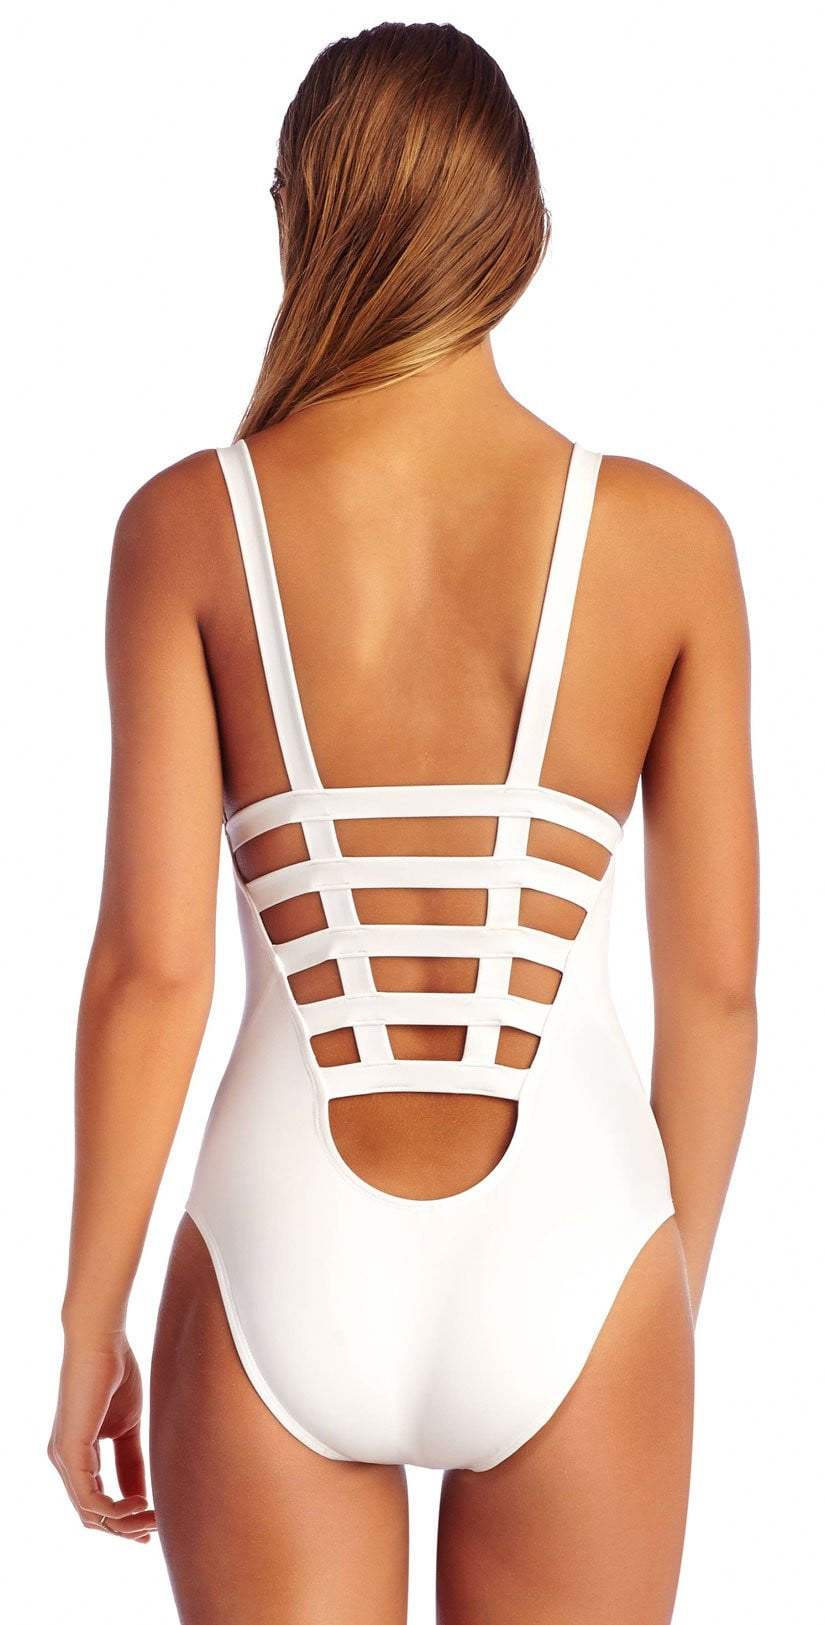 Vitamin A EcoLux Neutra One Piece in White 50M ECW back view